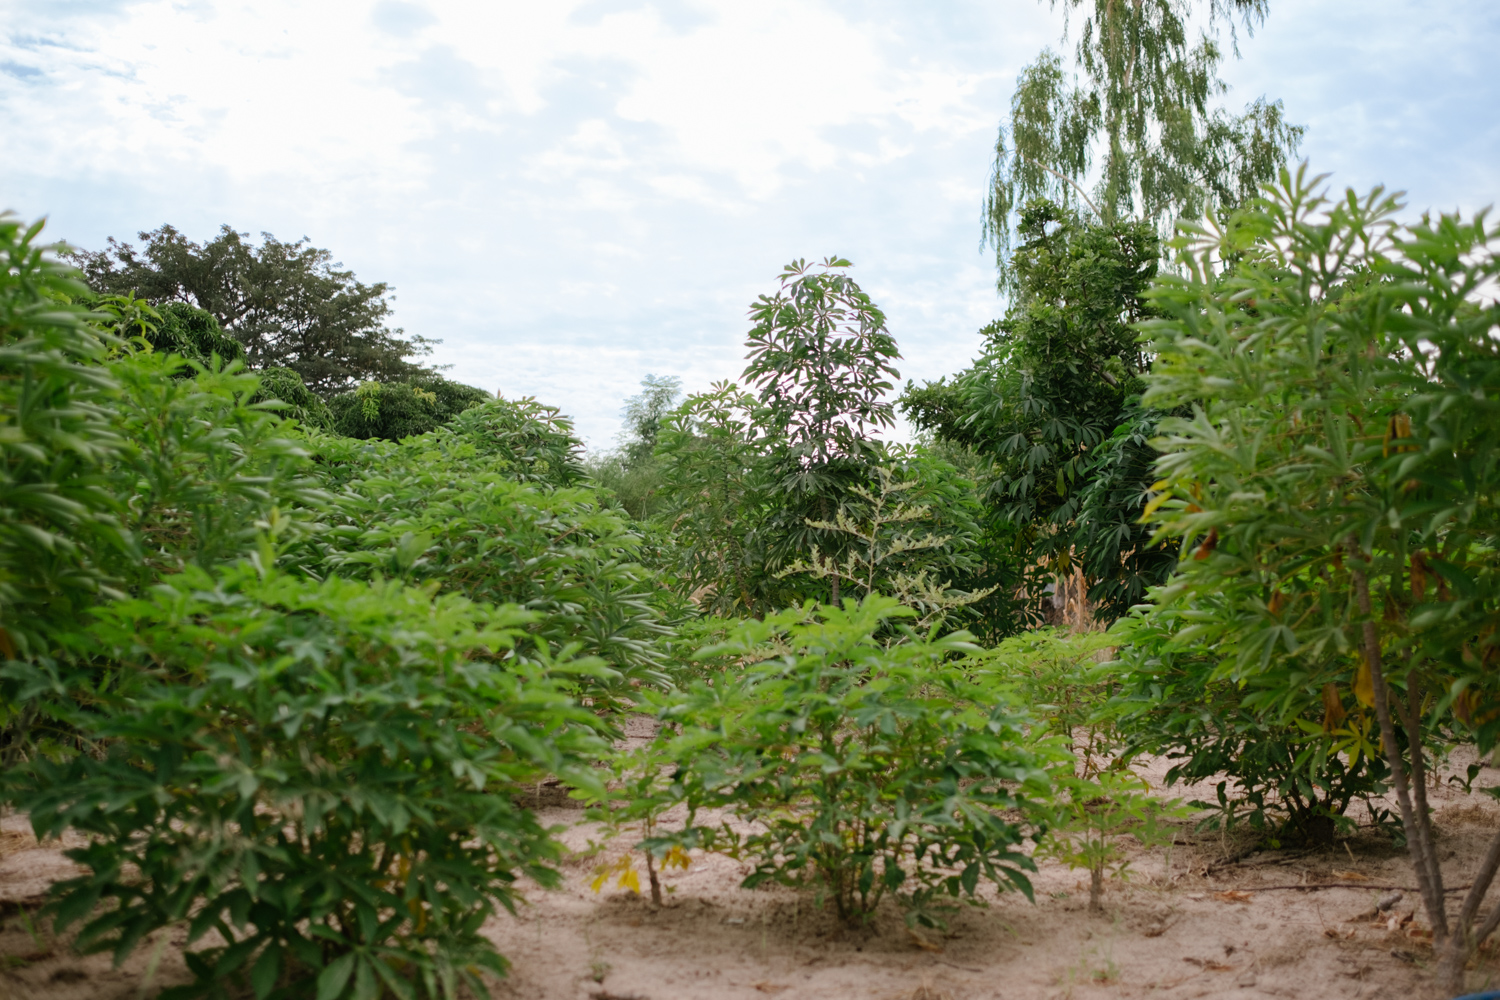 Senegal-Ecosia-Forest-Garden-Agroforestry-trees-climate-change--58-of-103-